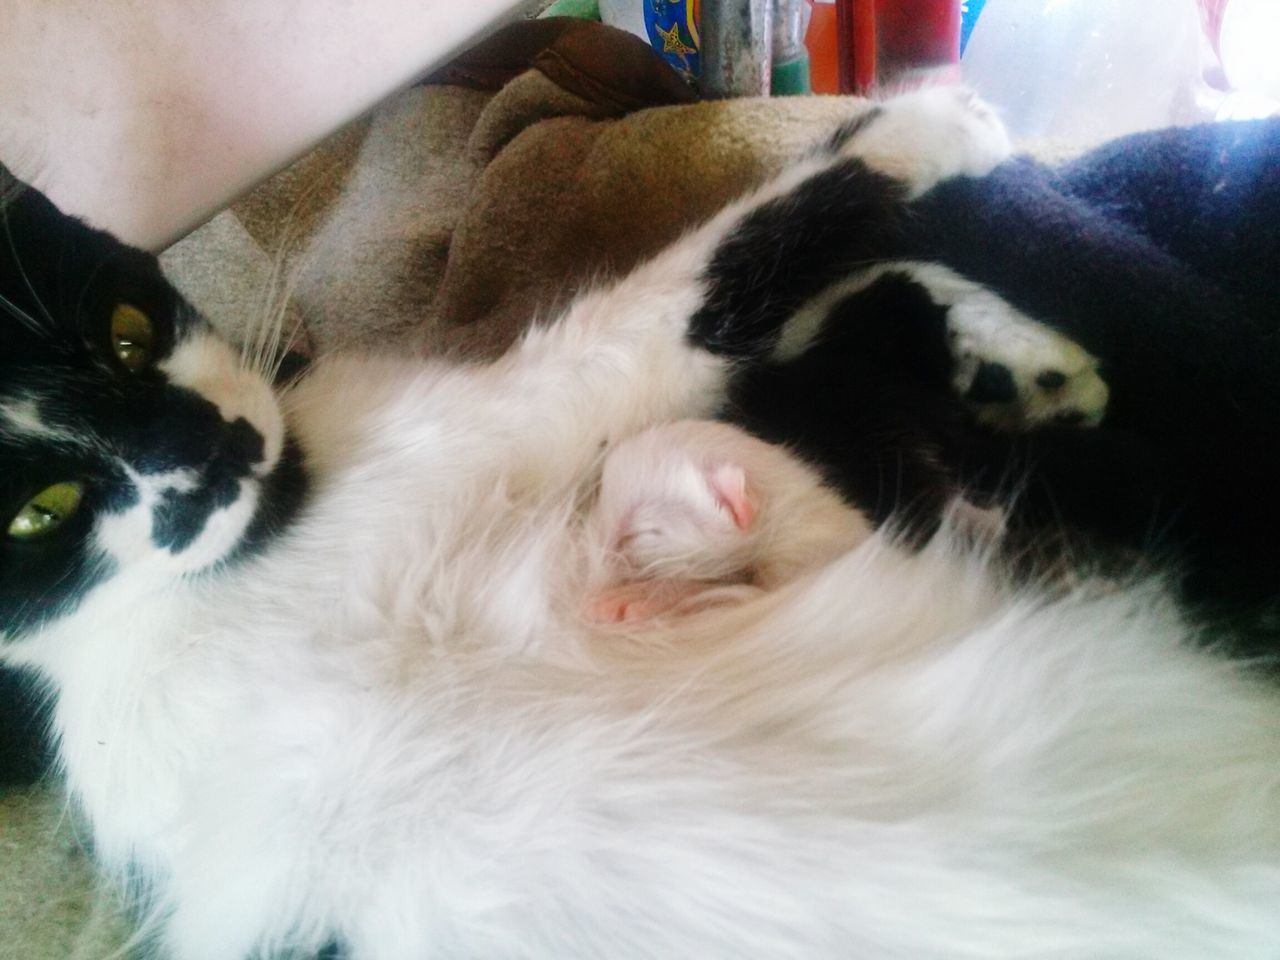 domestic animals, mammal, pets, animal themes, domestic cat, indoors, sleeping, feline, relaxation, no people, close-up, day